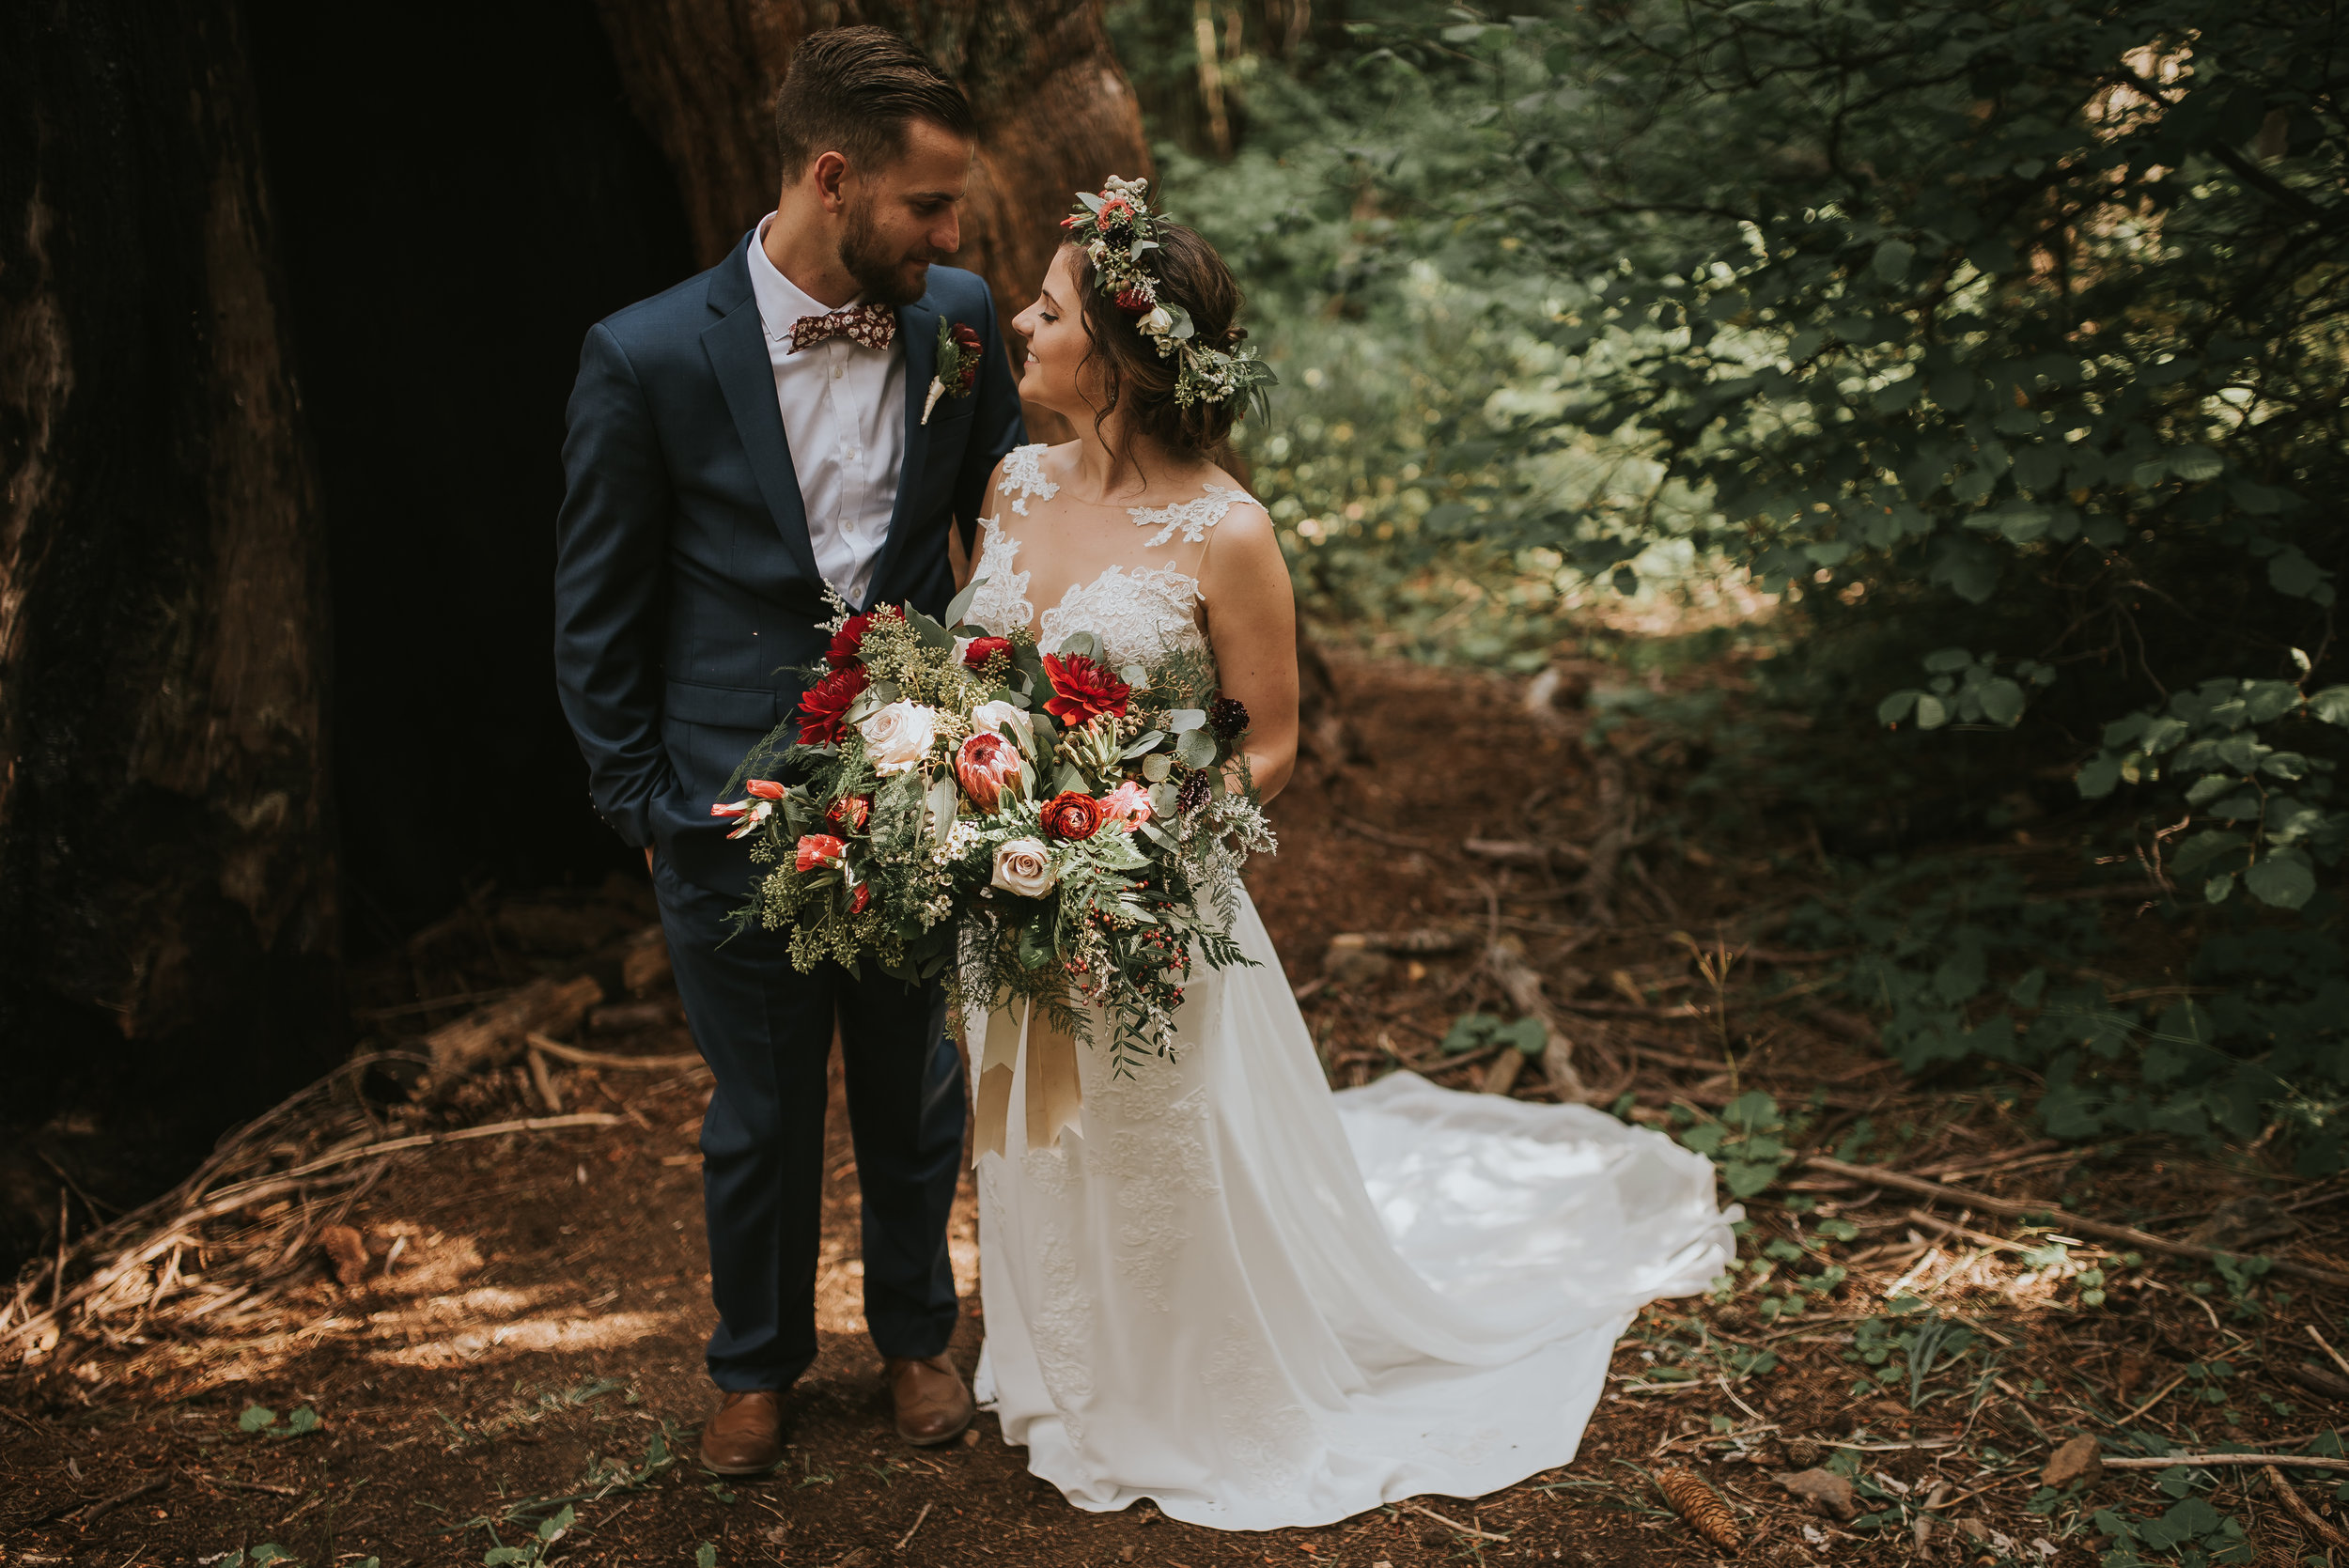 Click here to view the whole Yosemite Elopement!